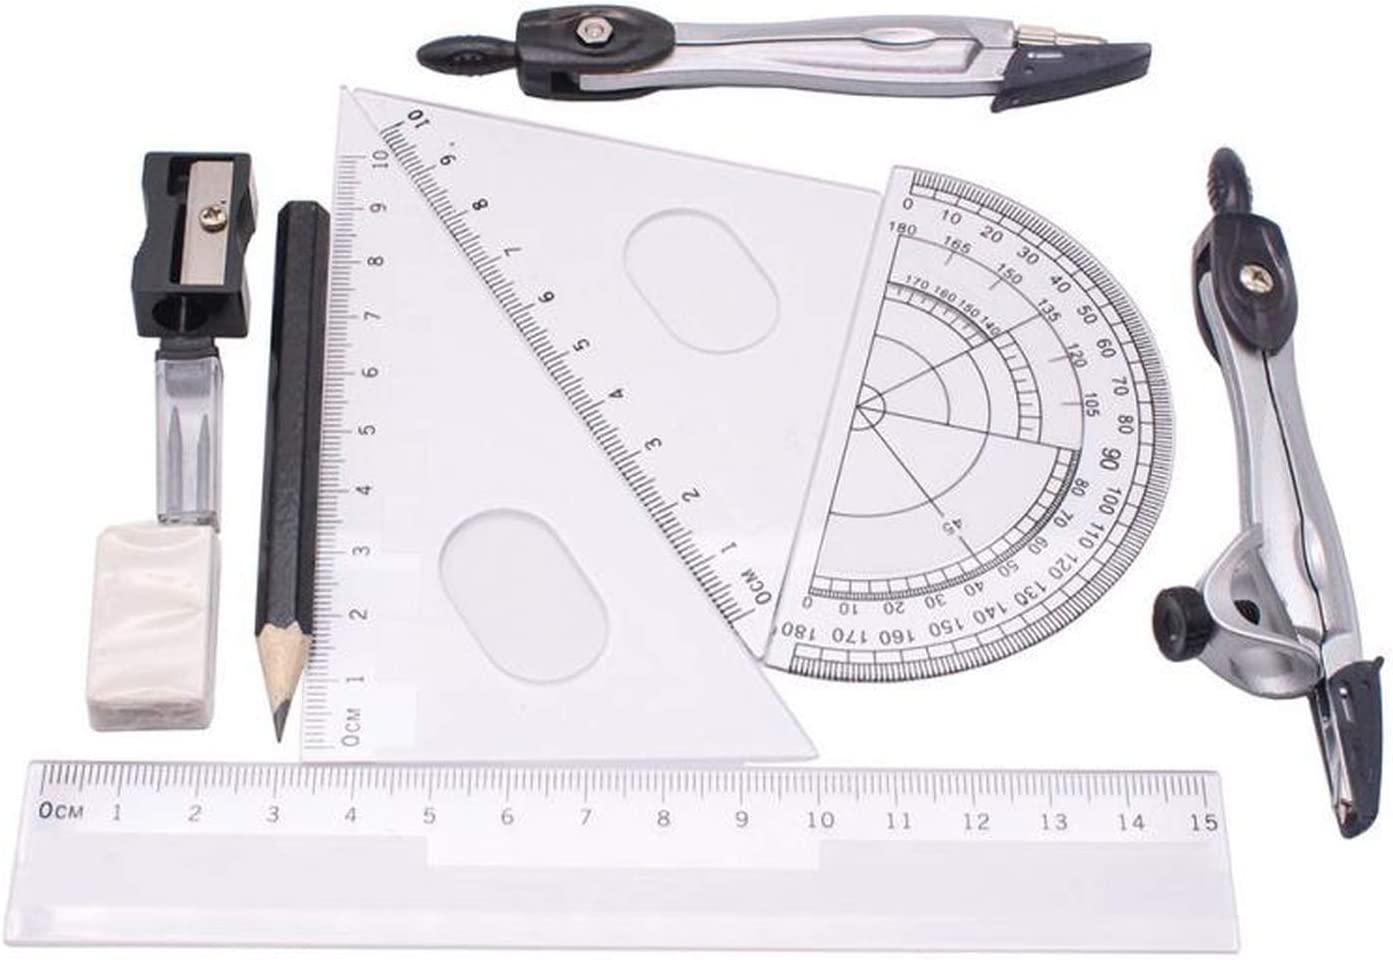 10Pcs Geometry Protractor Drawing School Compasses Set Math Eraser for Students School Divider,as Show